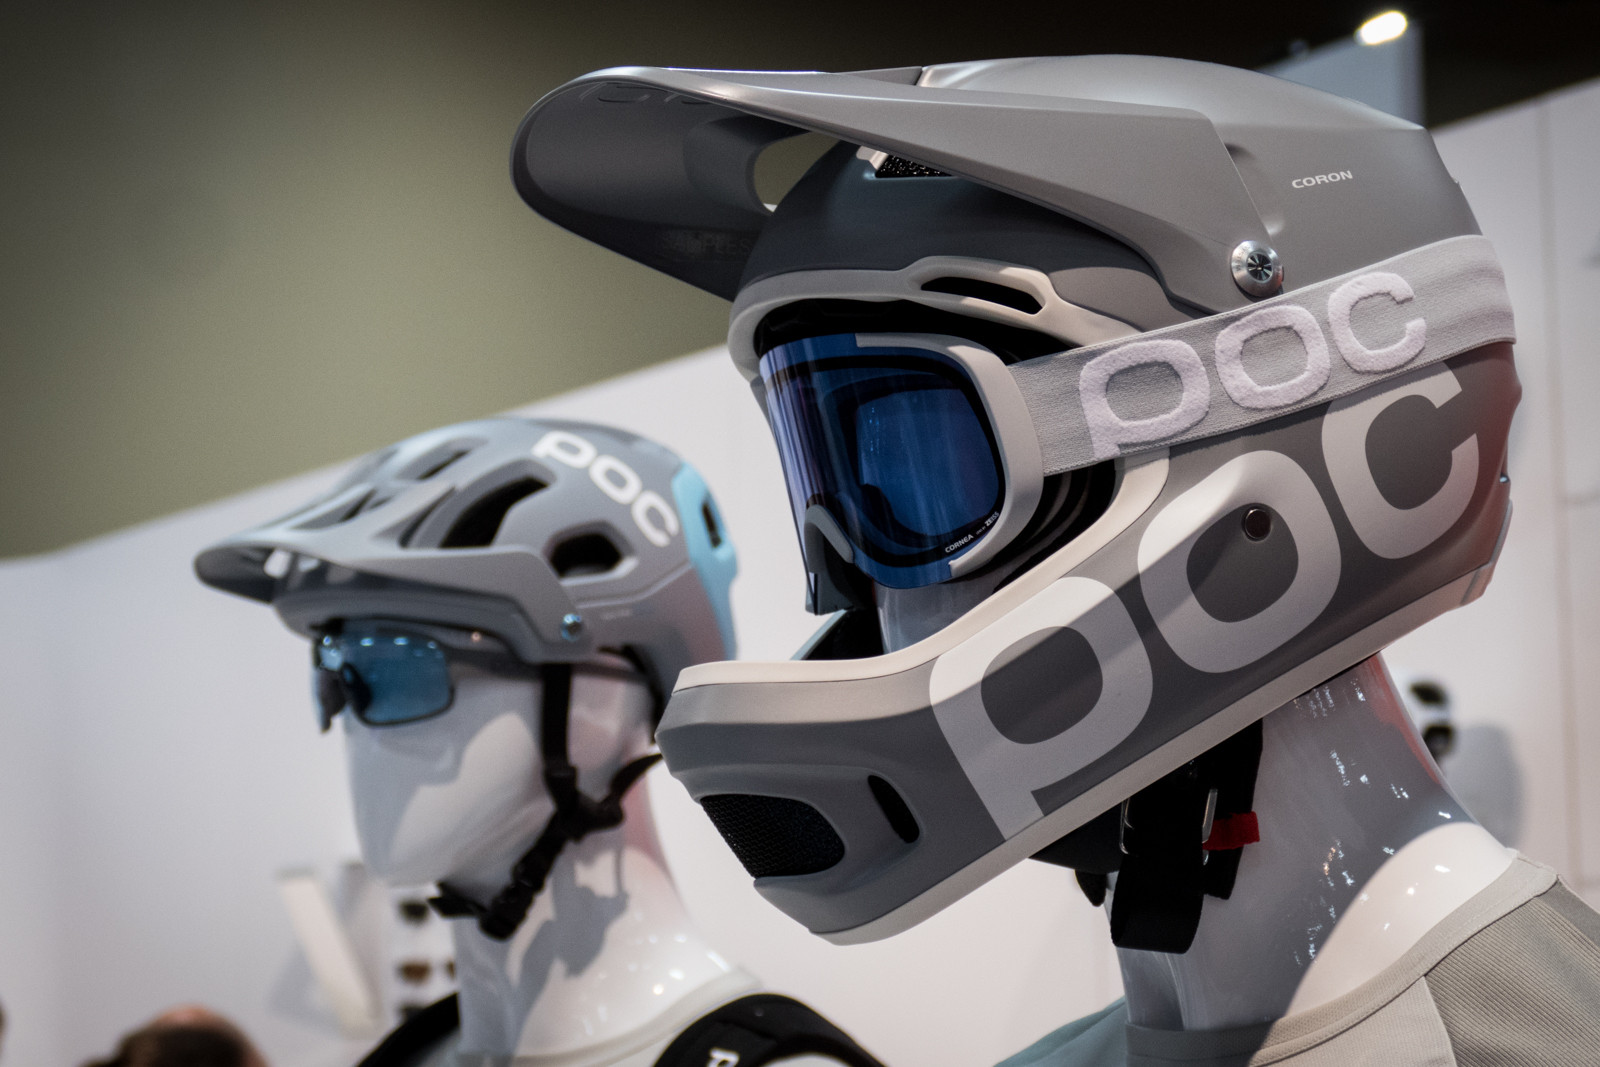 POC Coron Full Face Helmet - 2016 Protective Gear and Apparel at Interbike - Mountain Biking Pictures - Vital MTB